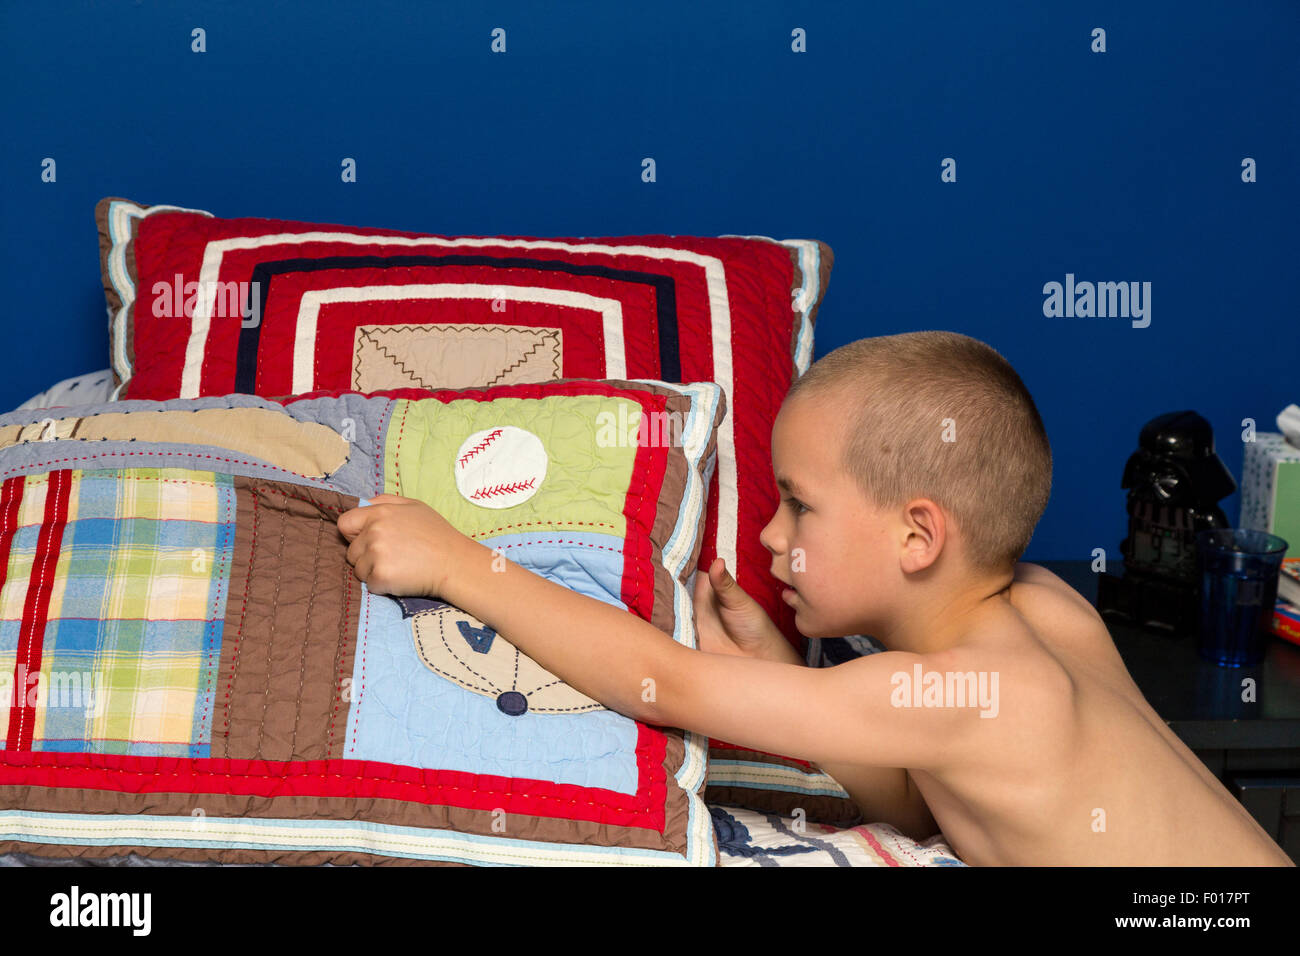 Young Boy (Seven Years Old) Making His Bed in the Morning.  MR - Stock Image